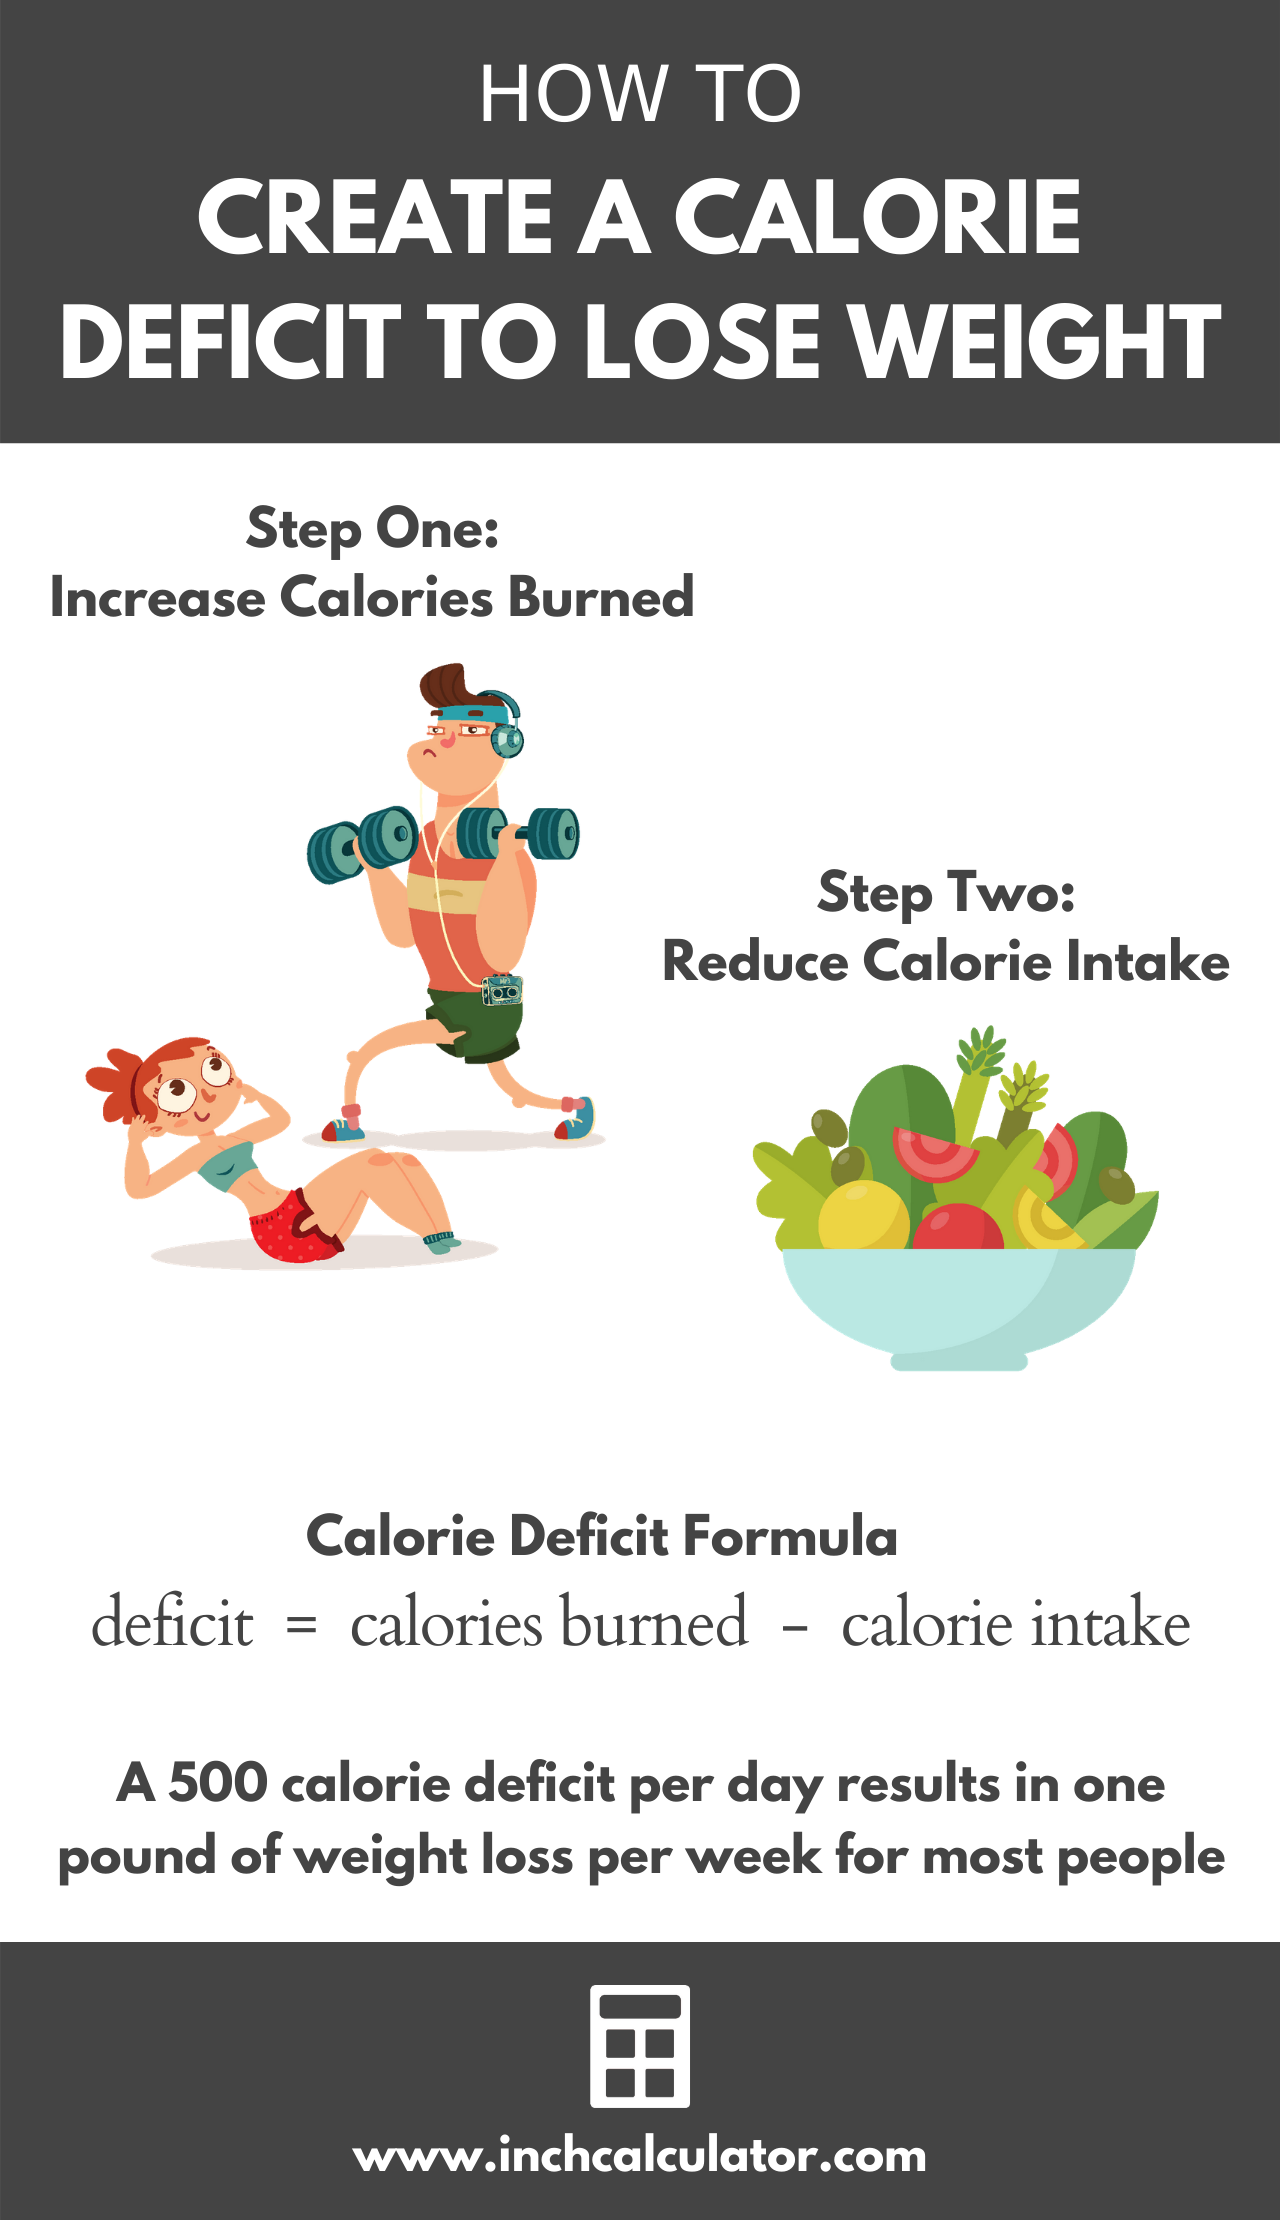 Infographic showing how to calculate a calorie deficit to lose weight